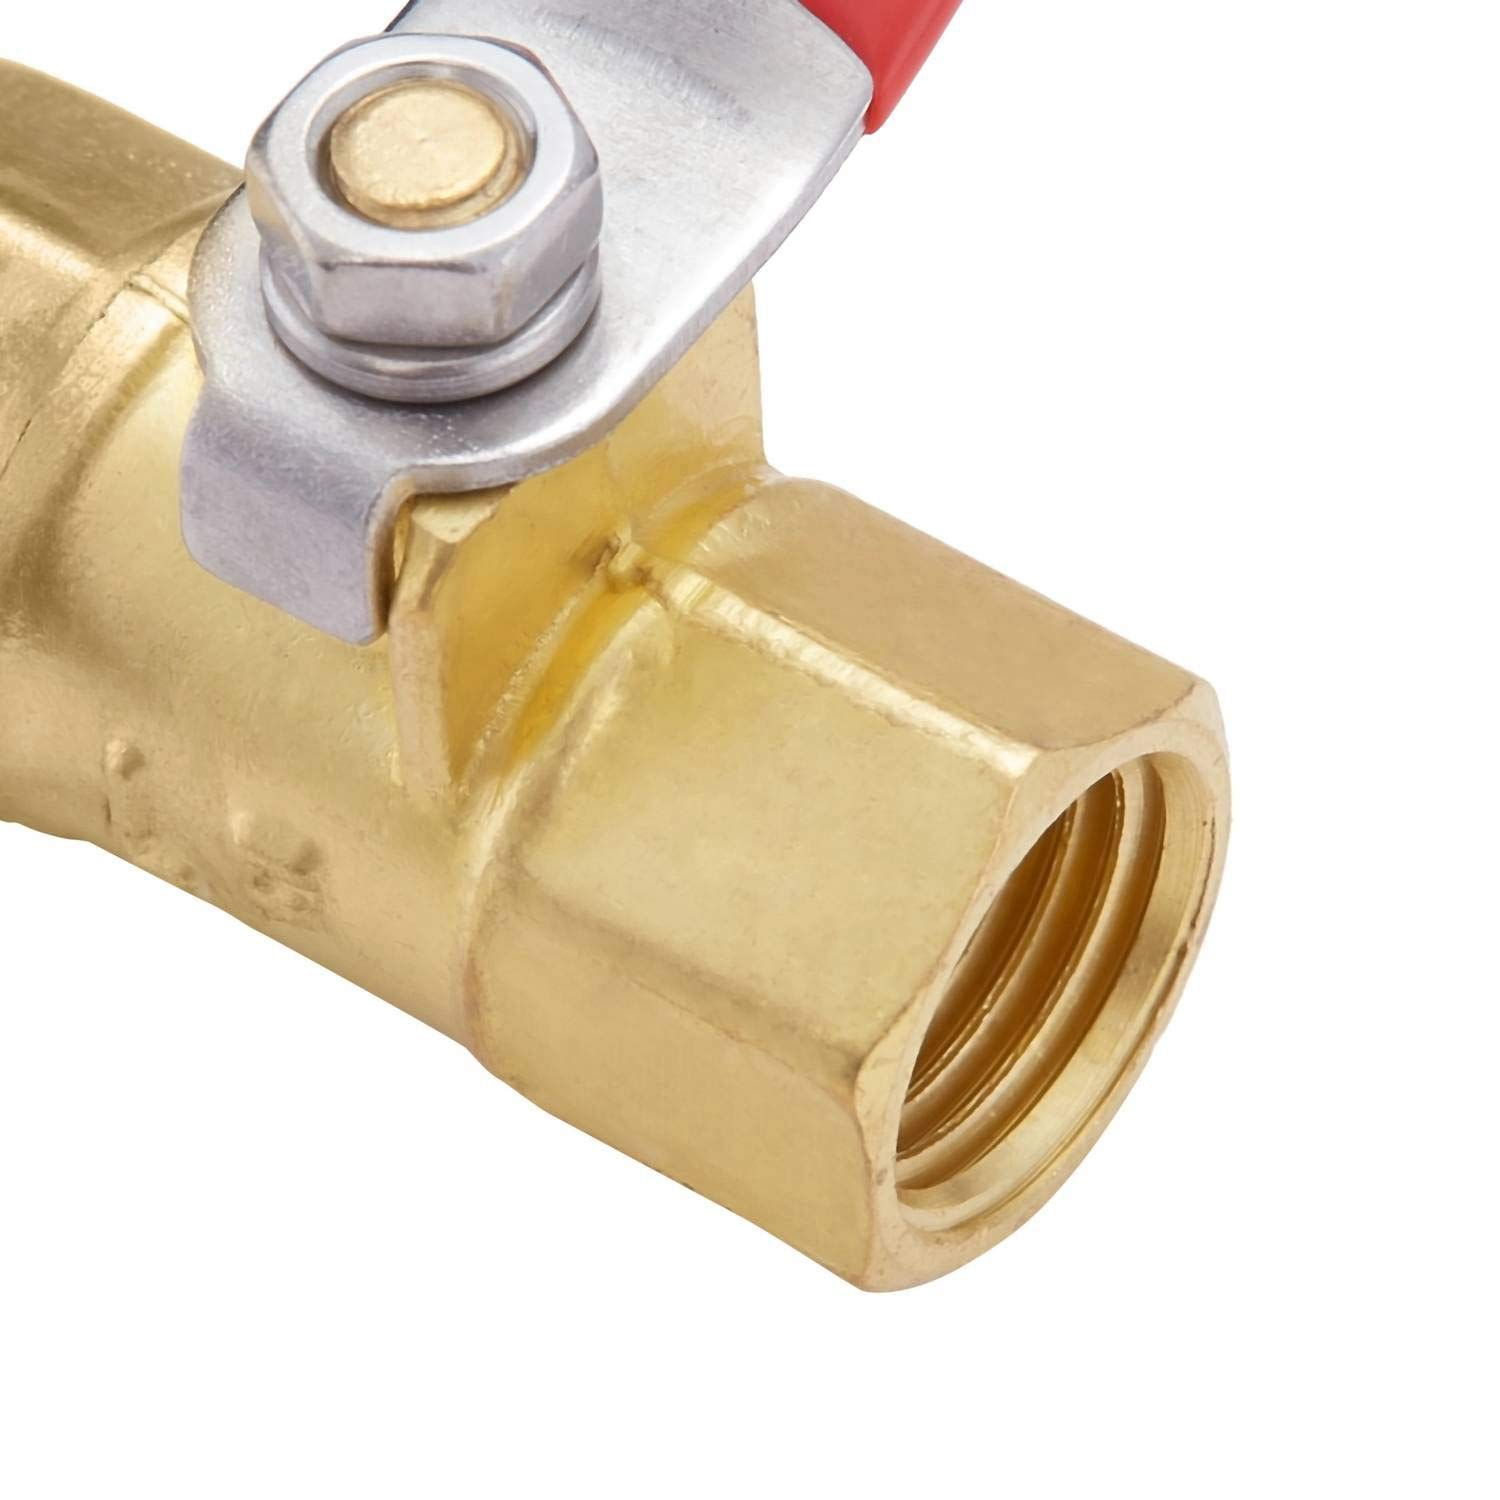 180 Degree Operation Handle Rated to 600 WOG for Tank Drain Minimprover Lead Free Brass 2 PCS Inline Mini Ball Valve Shut Off Switch 1//4 NPT Female x 1//4 INCH NPT Female Pipe Fittings